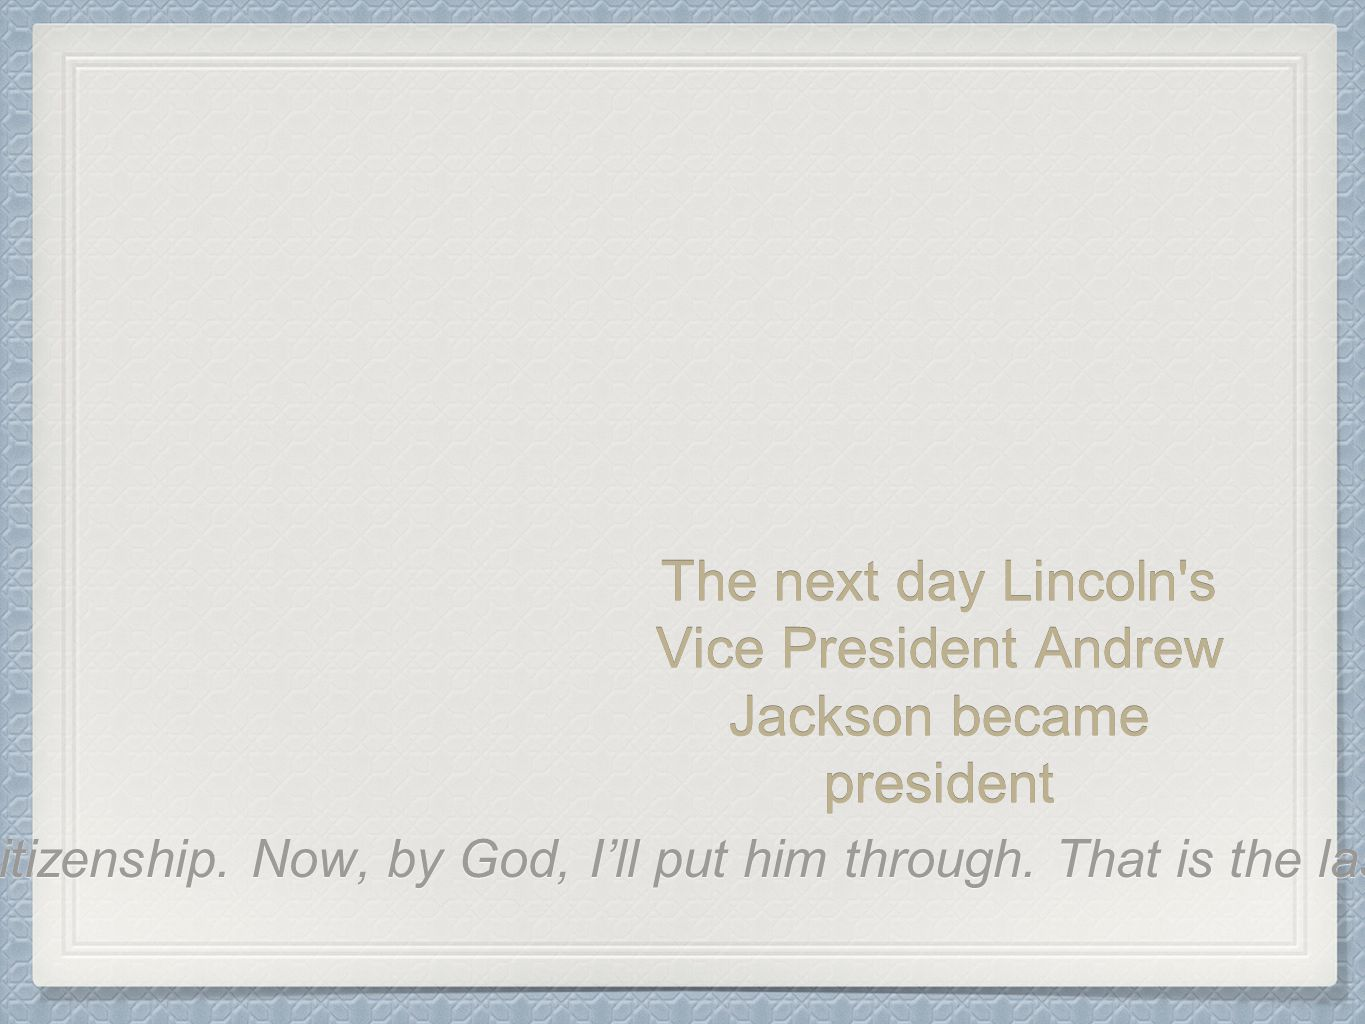 The next day Lincoln's Vice President Andrew Jackson became president That means n----- citizenship. Now, by God, I'll put him through. That is the la